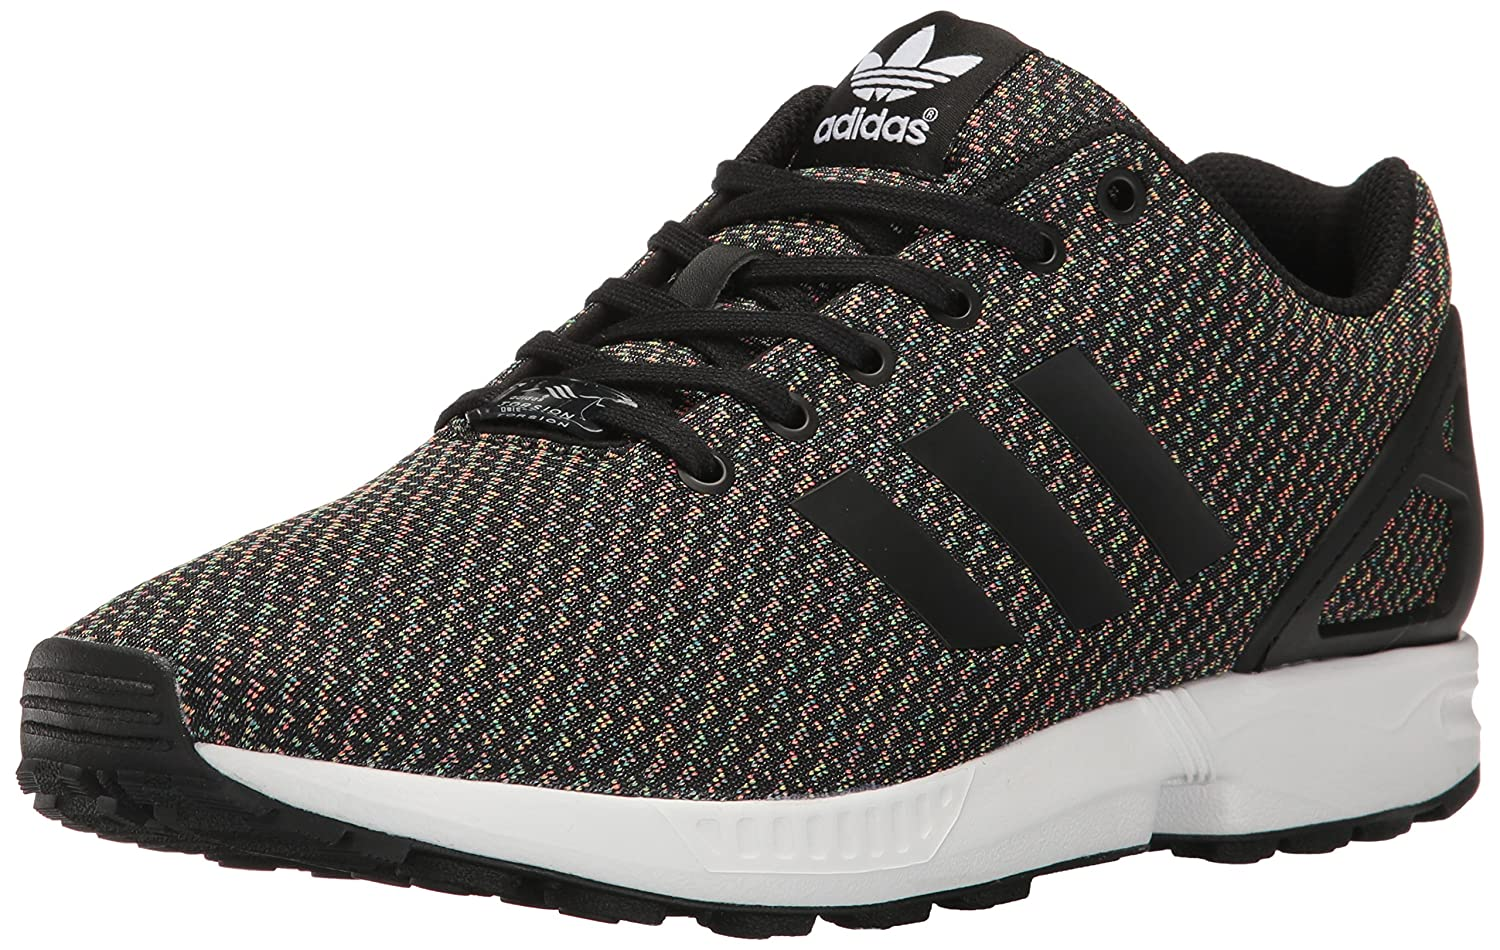 adidas Originals Men's ZX Flux Fashion Sneaker B01LYYQGM8 8 D(M) US|Black/Black/Black